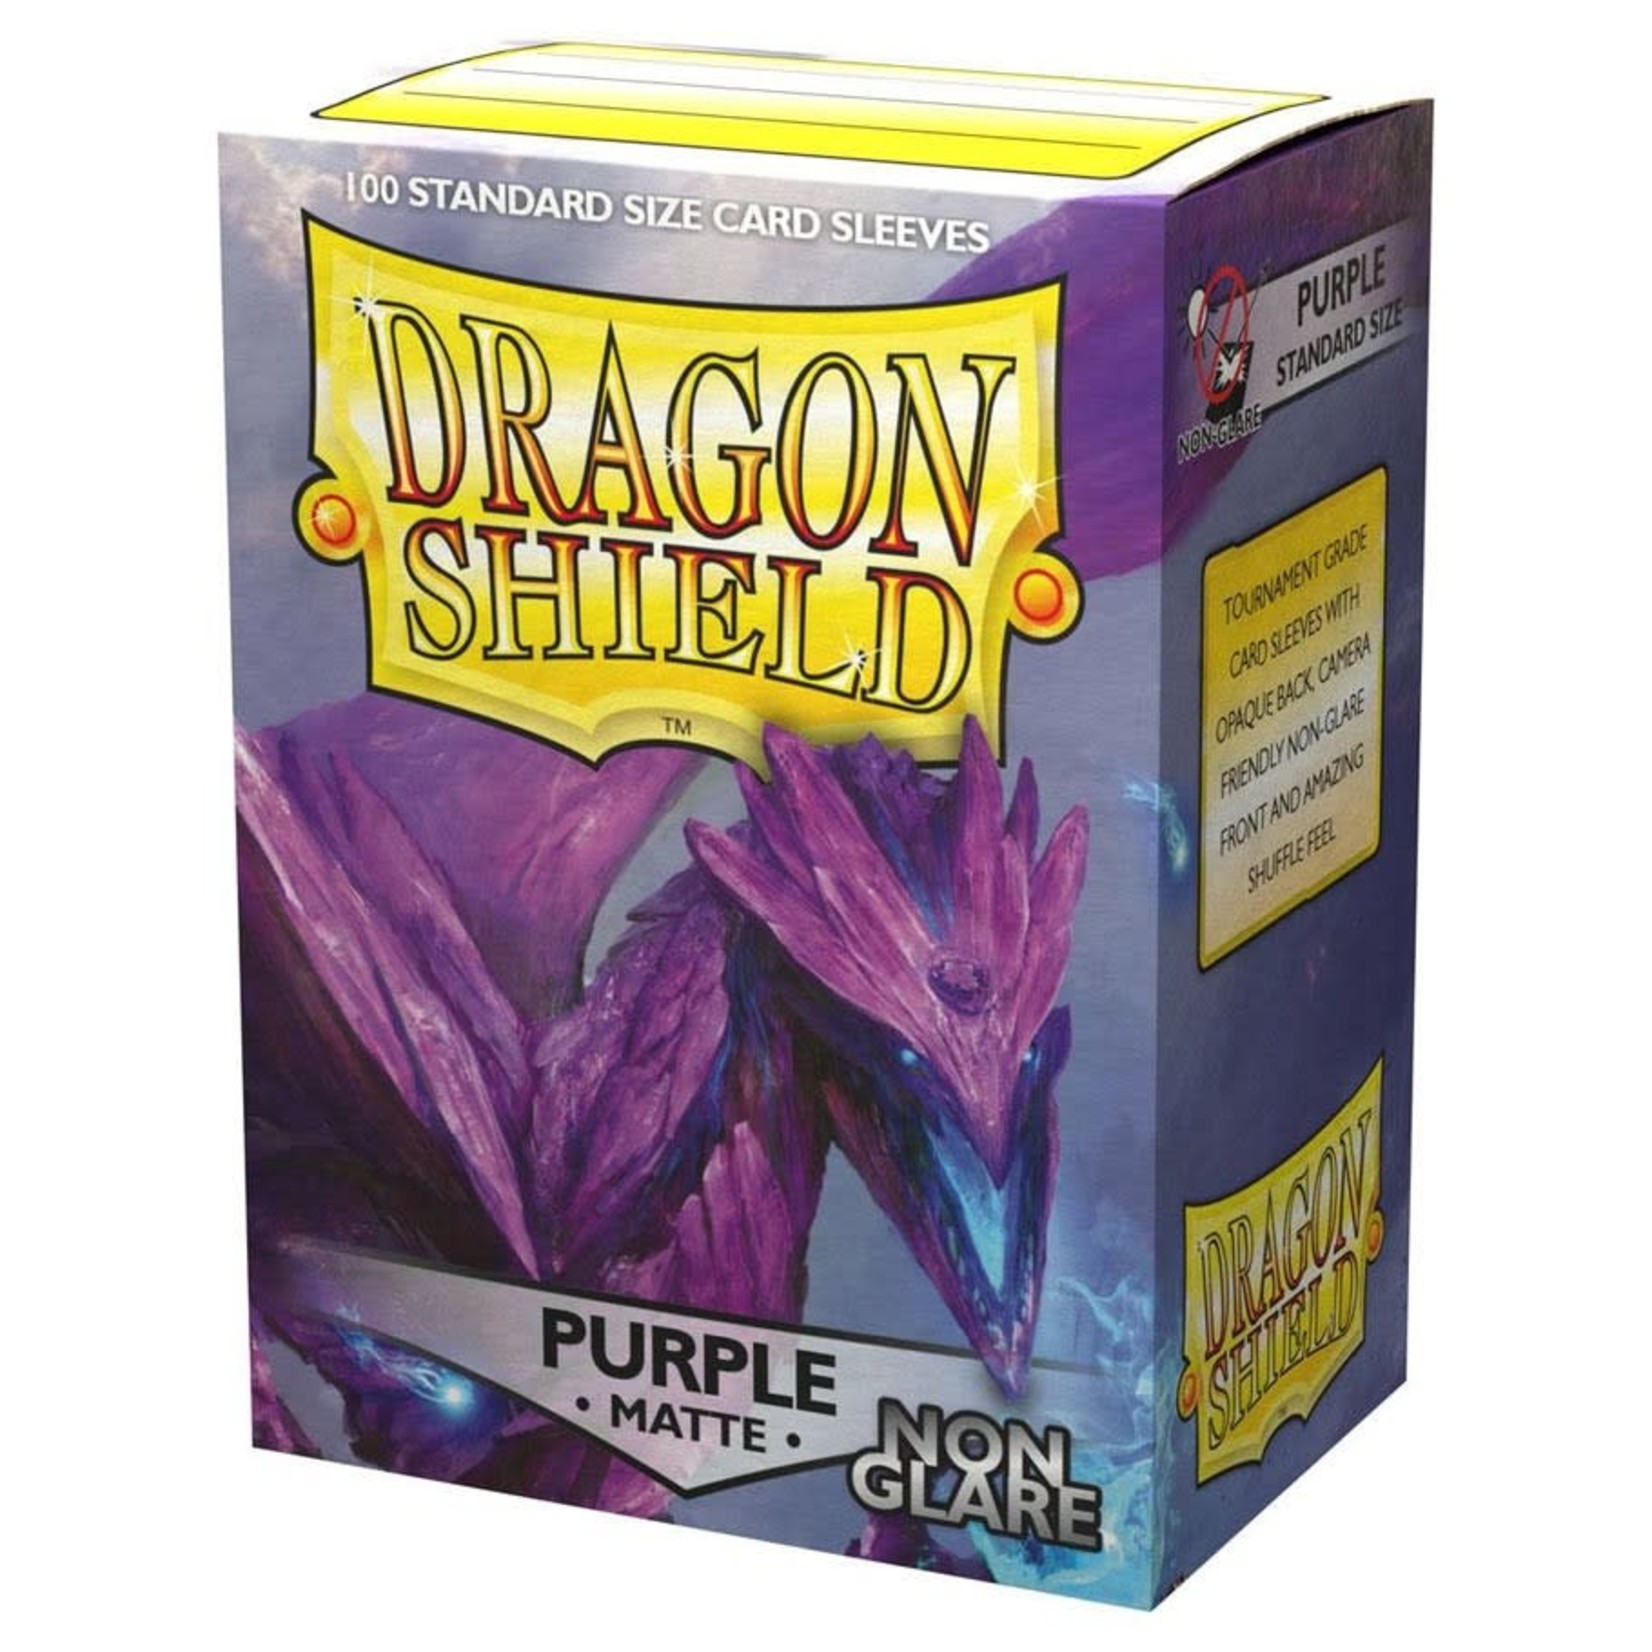 Dragon Shield Dragon Shield Matte Non-Glare Purple Card Sleeves (100)